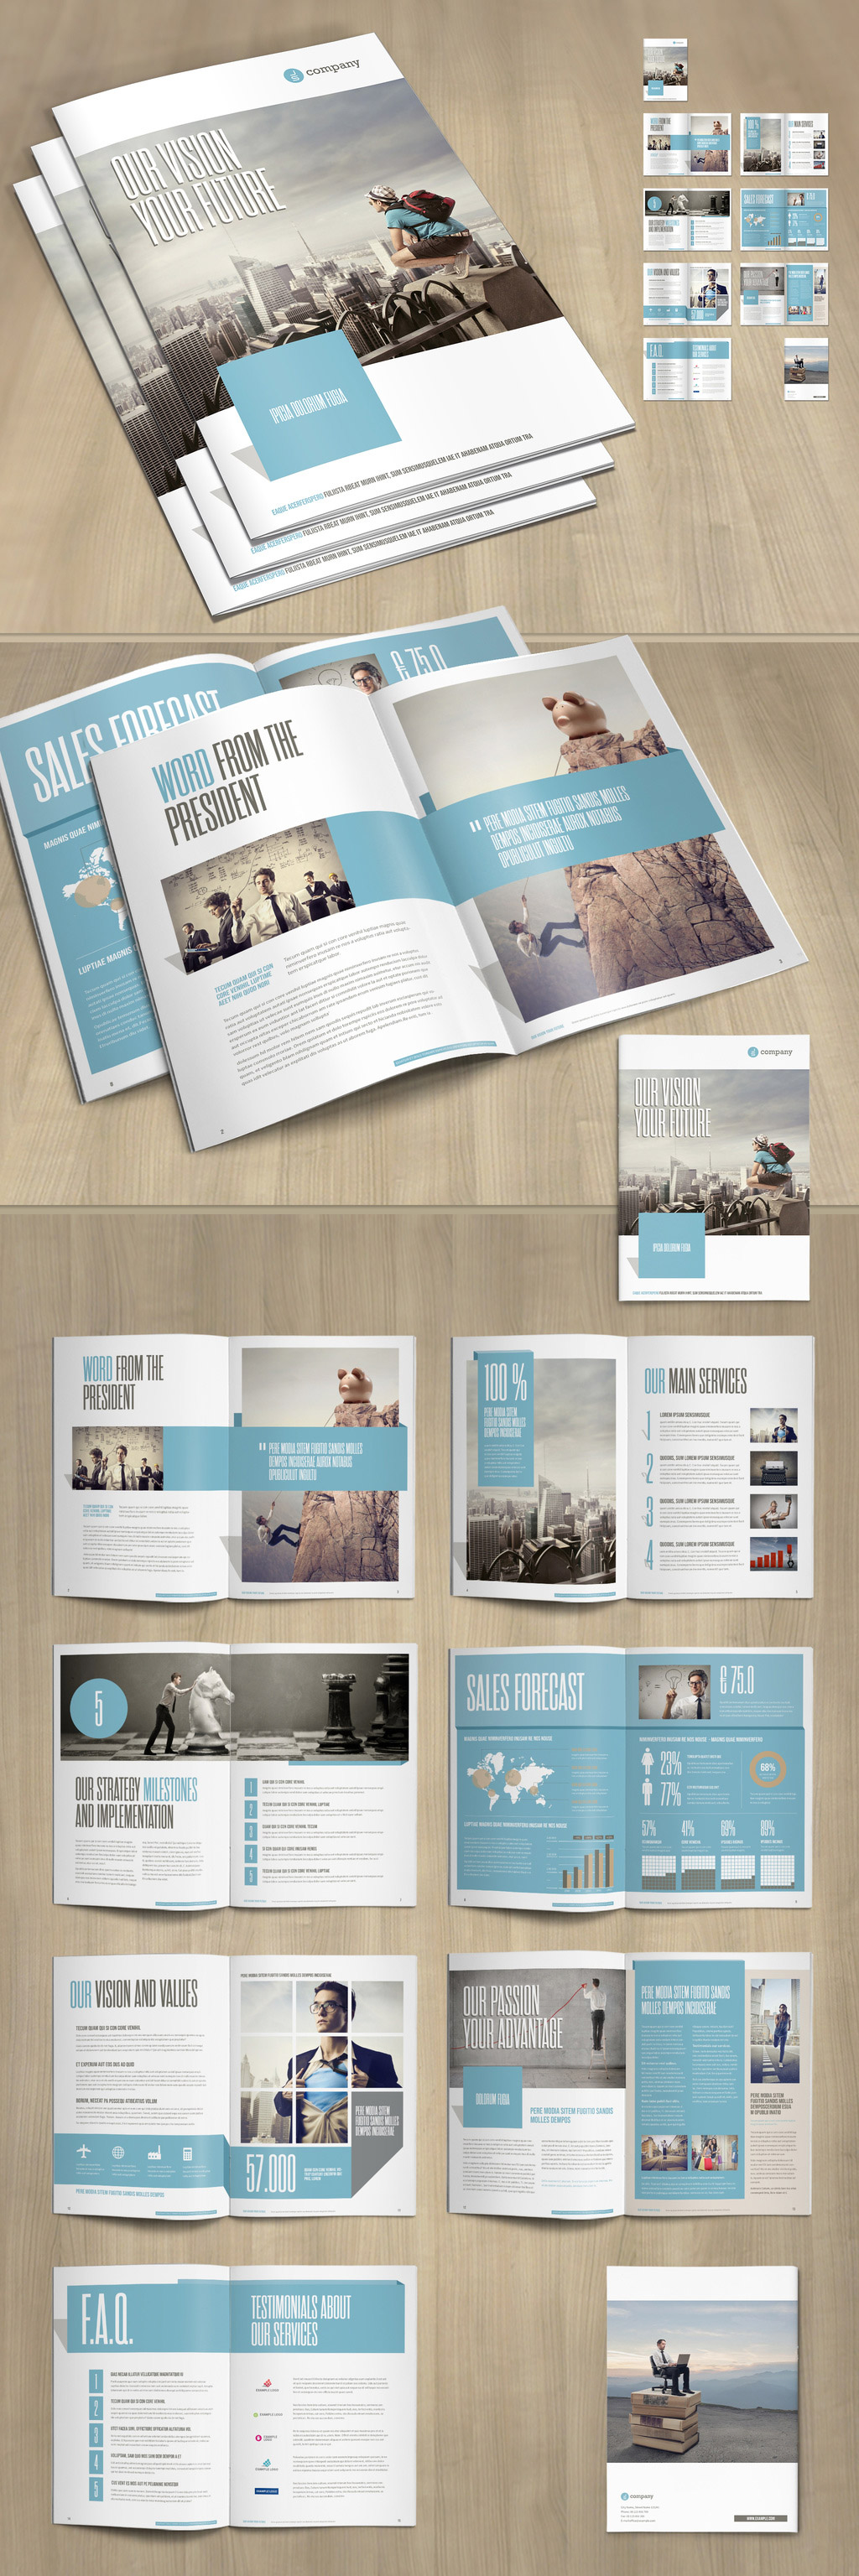 Business brochure layout with pale blue and gray accents.